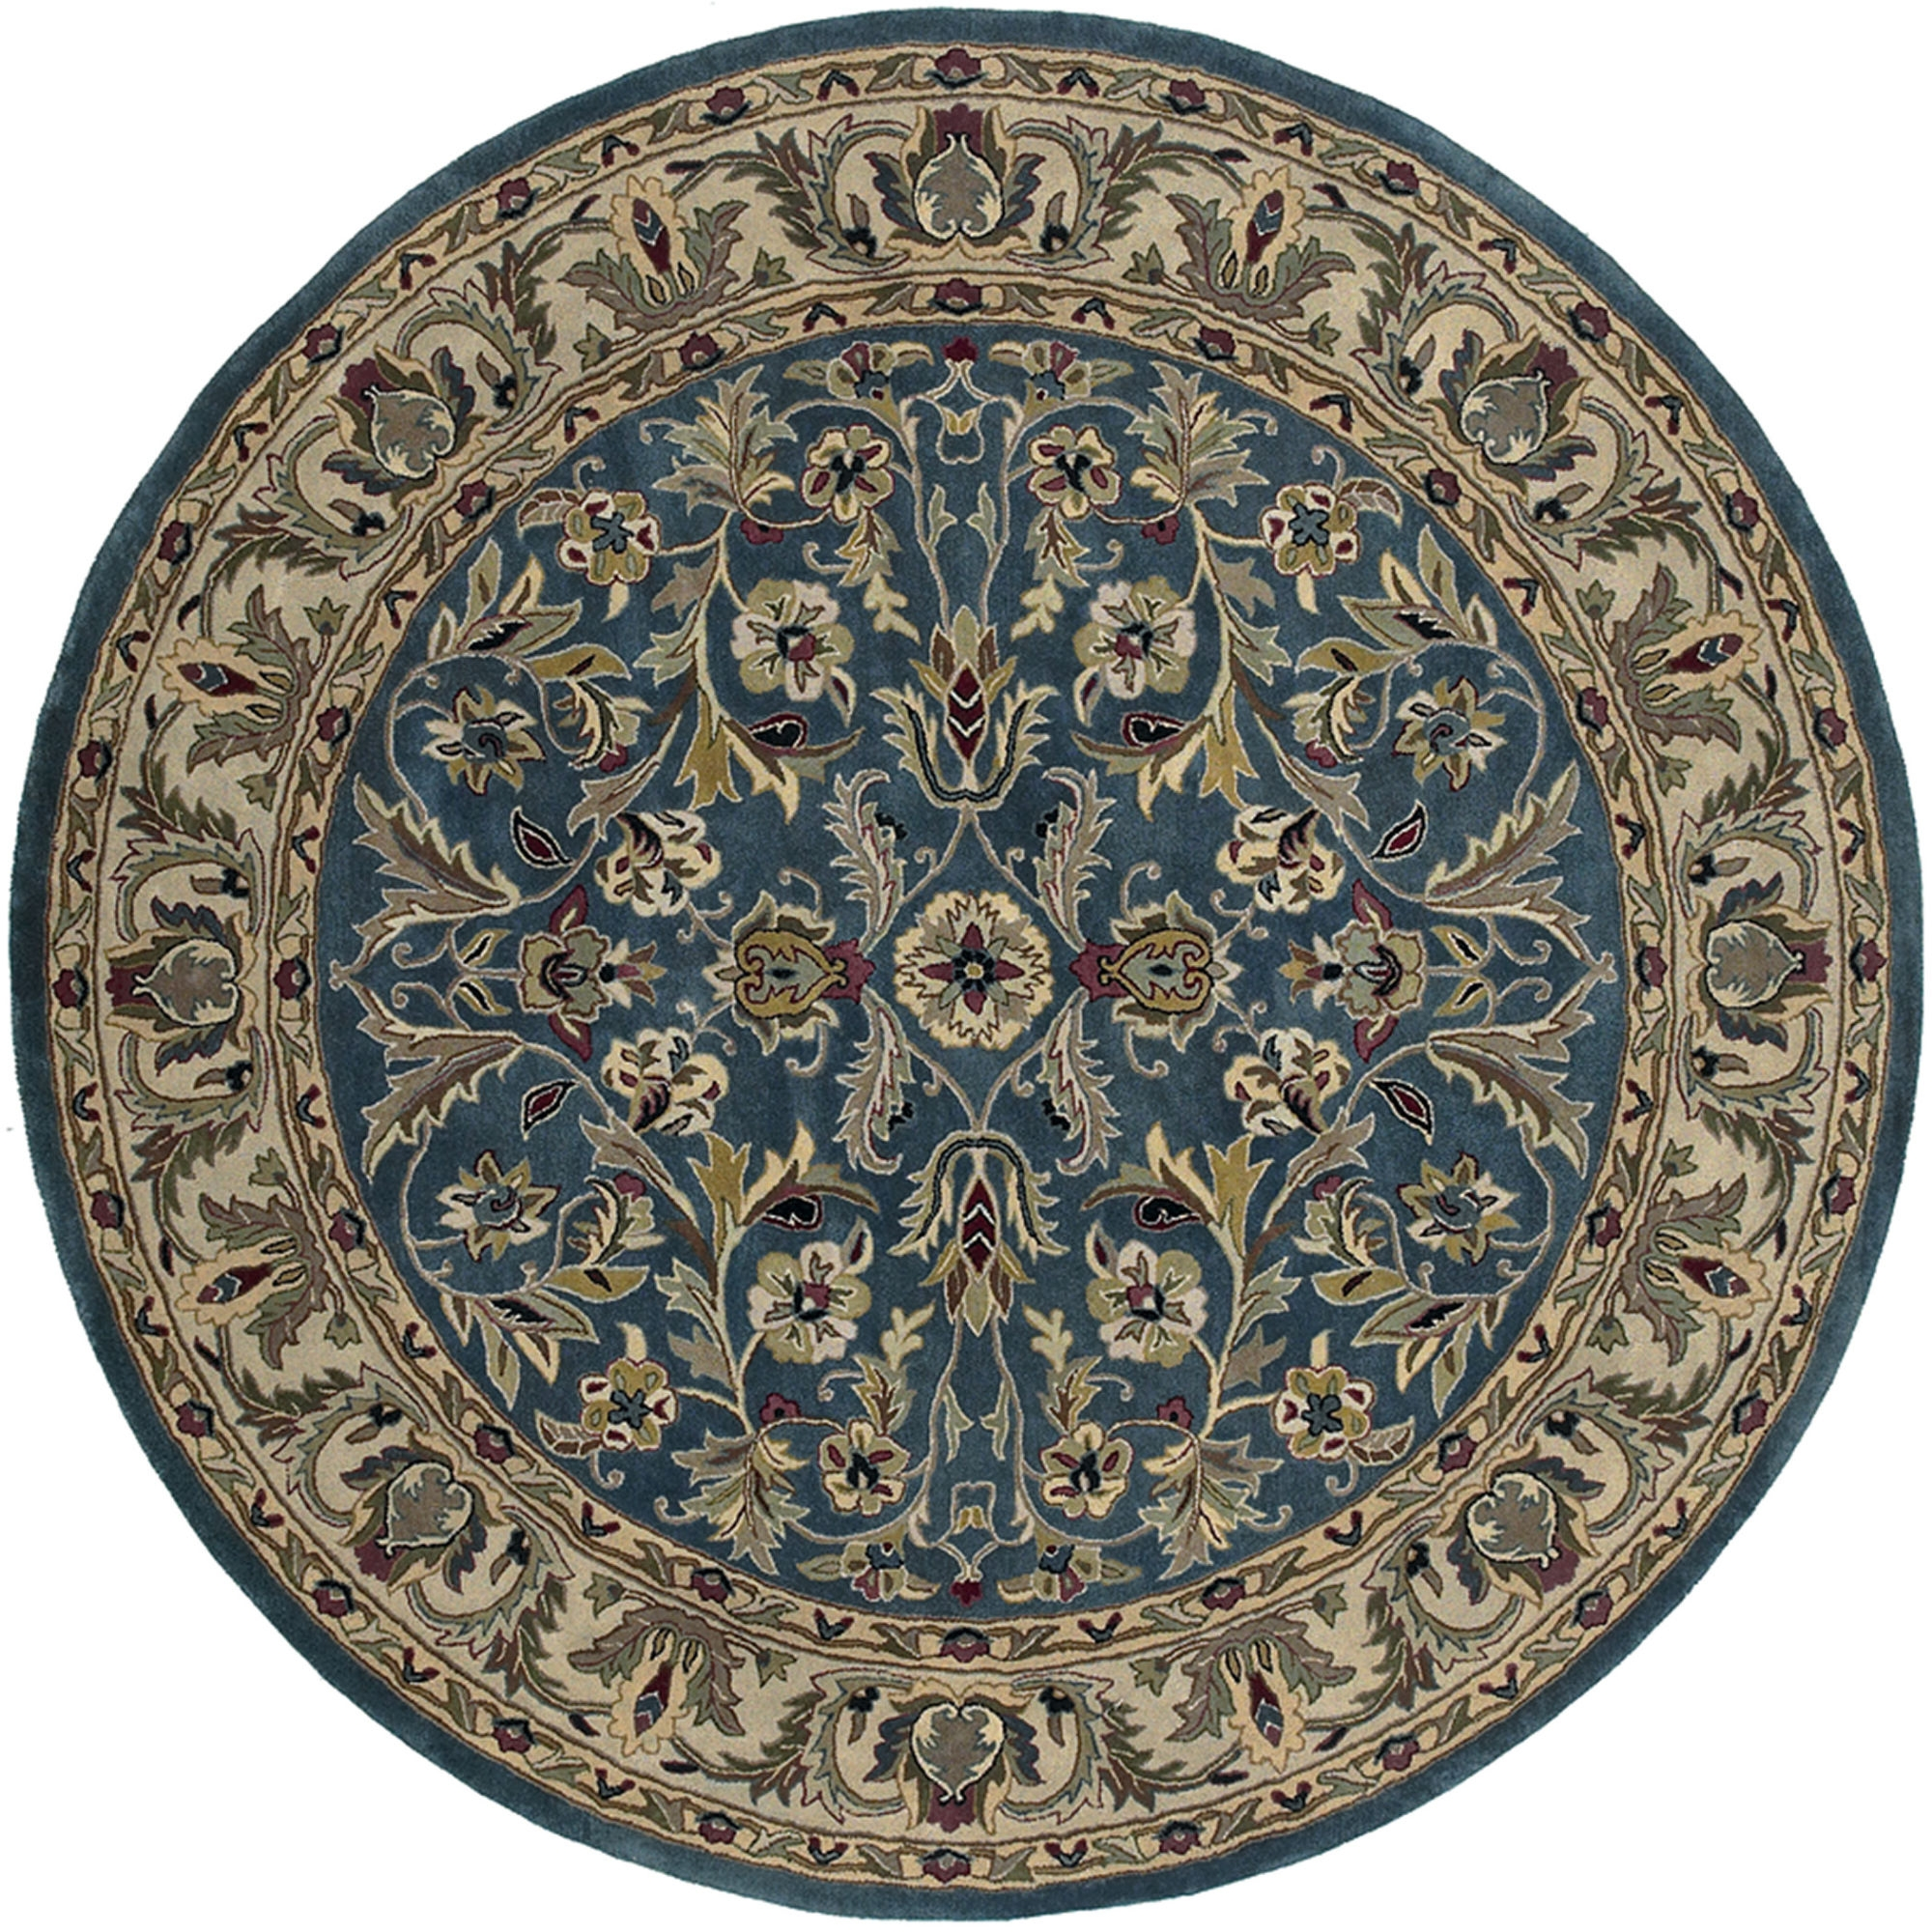 Round Carpet Rugs Home Decors Collection Throughout Circular Carpets (Image 6 of 15)